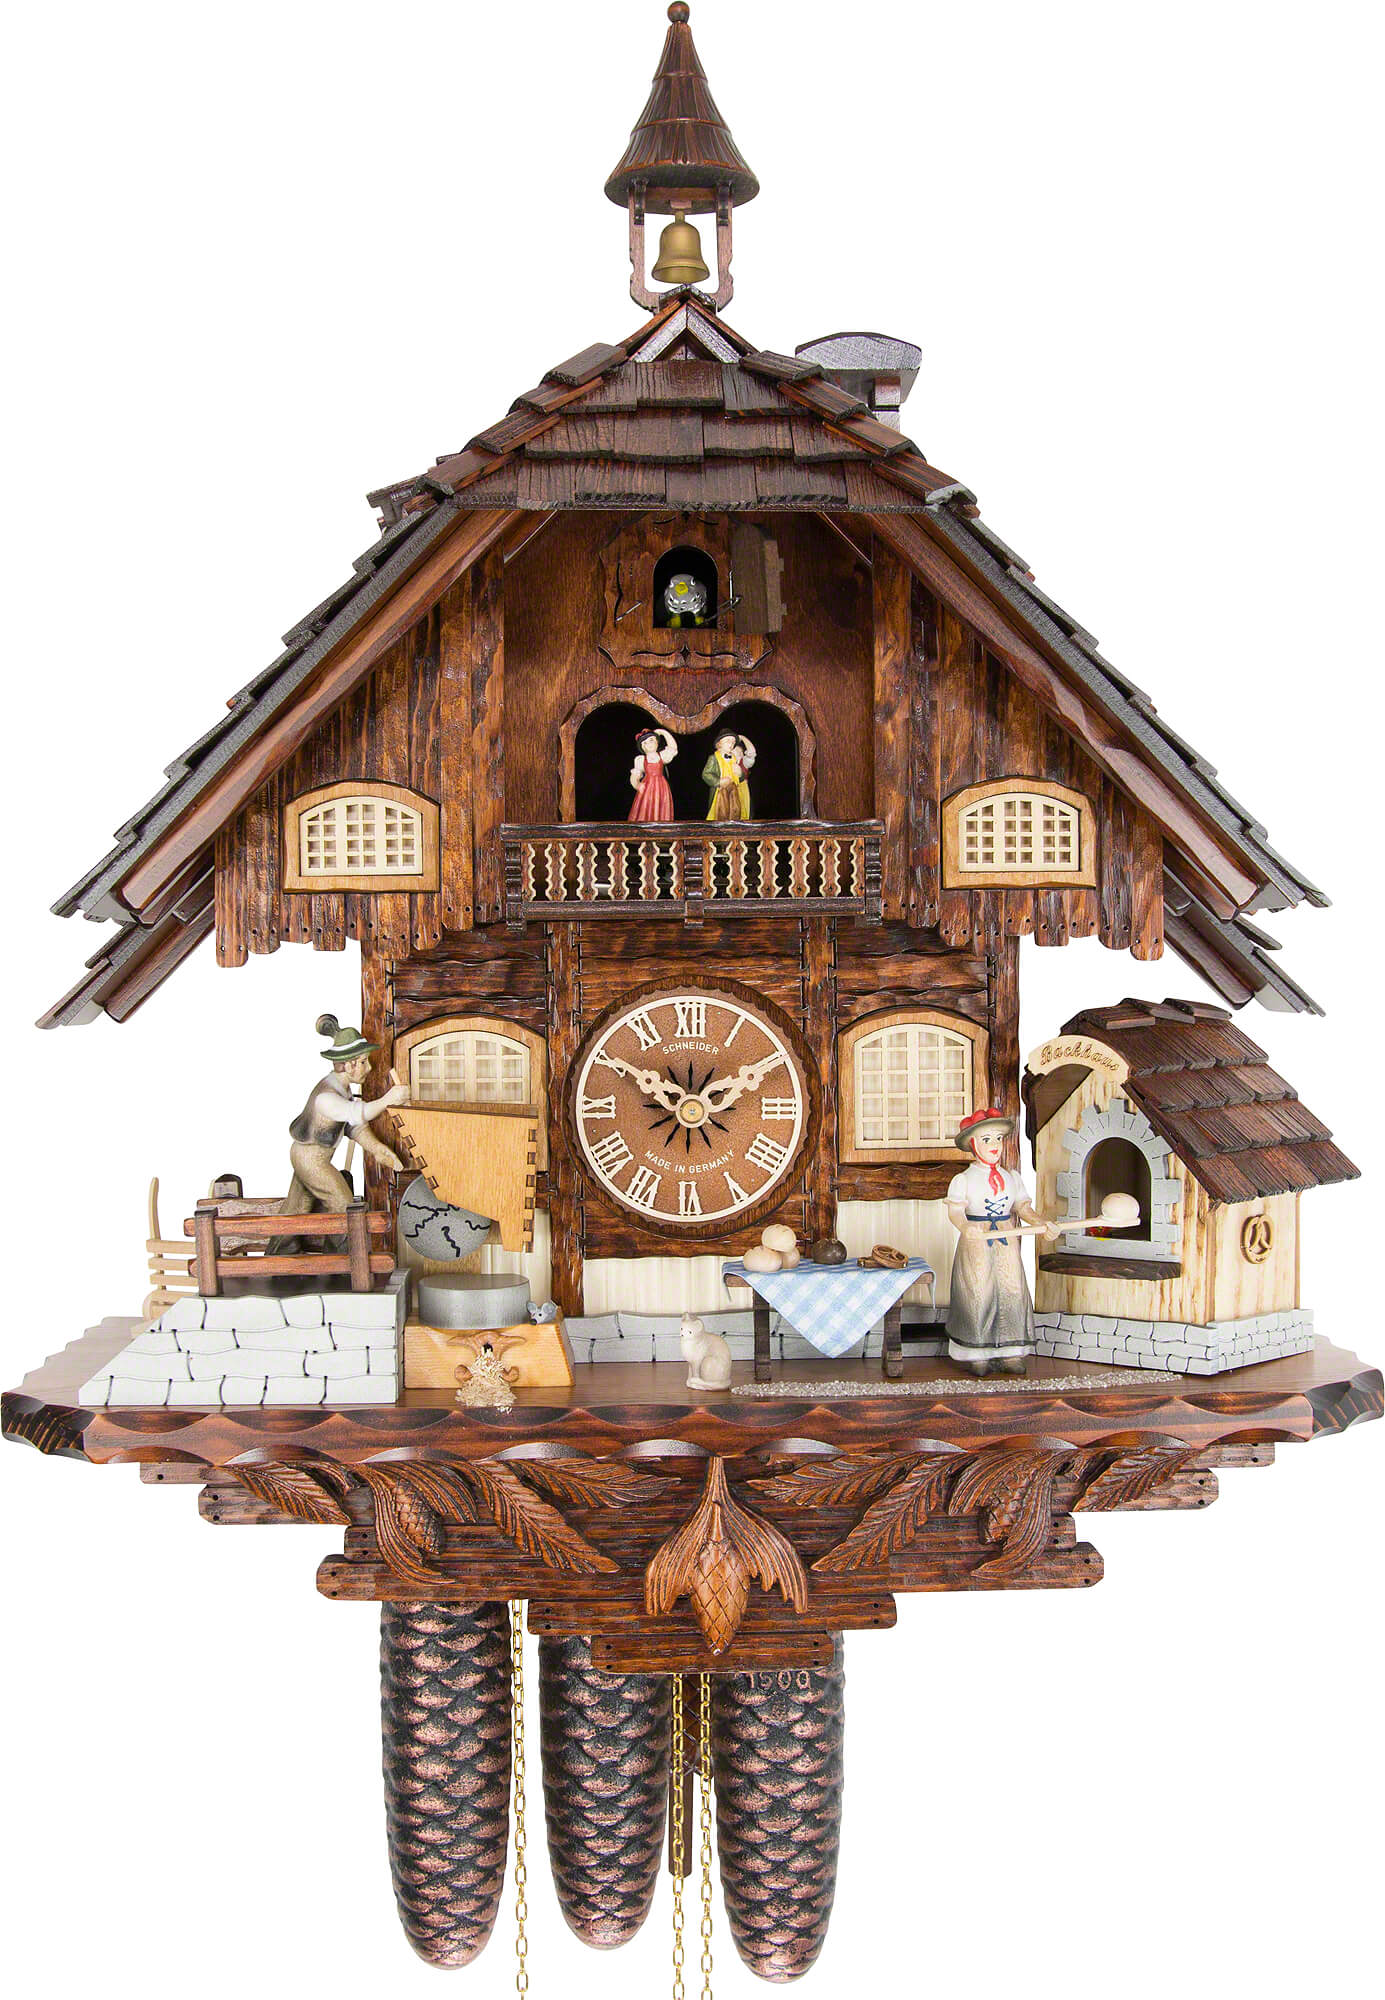 Cuckoo Clock 8 Day Movement Chalet Style 60cm By Anton